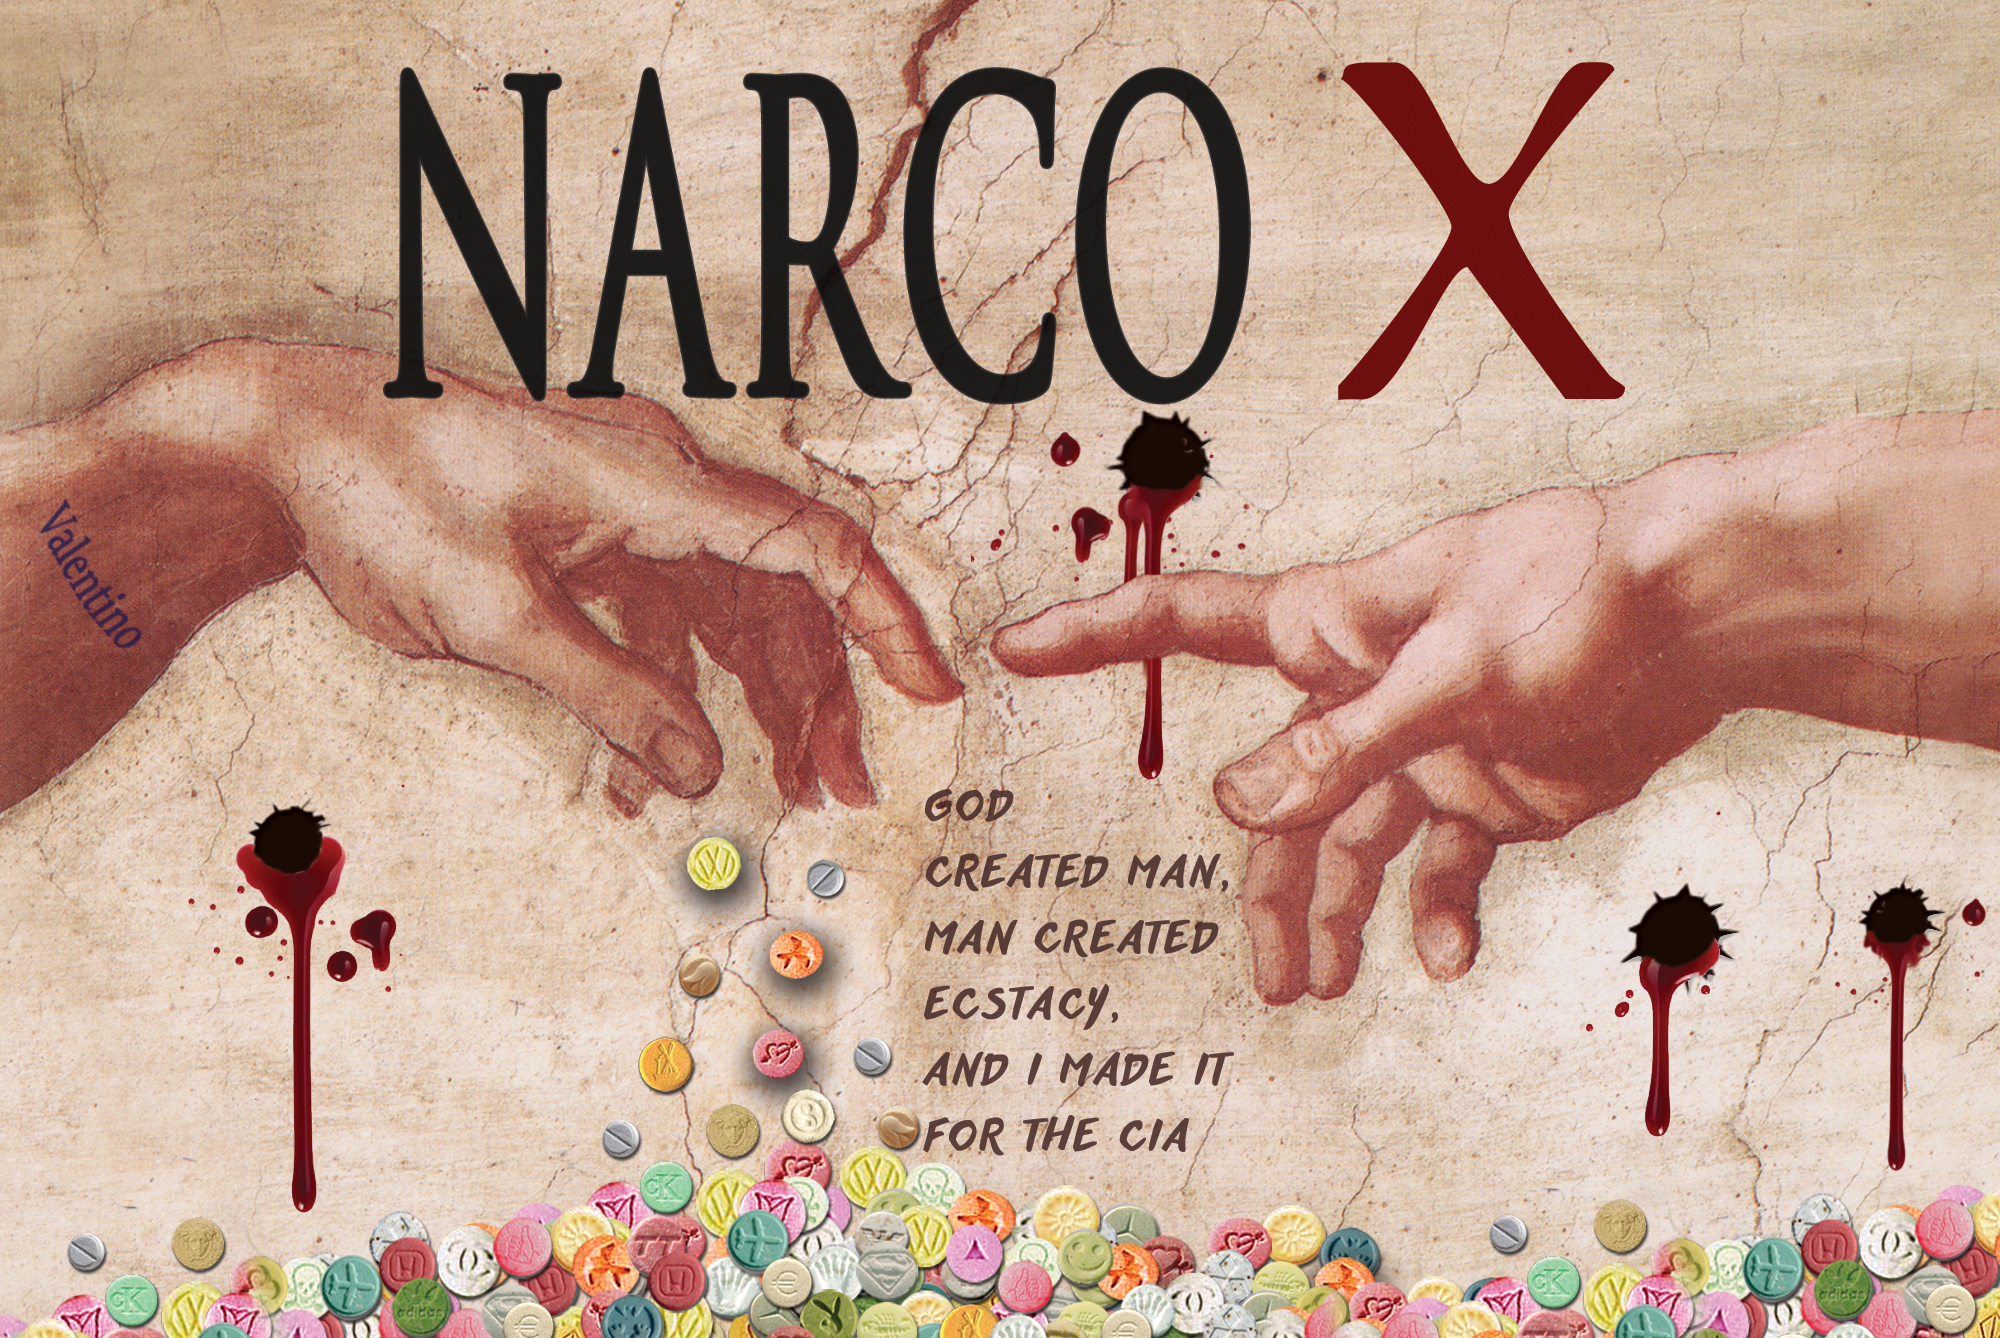 Narco X front cover